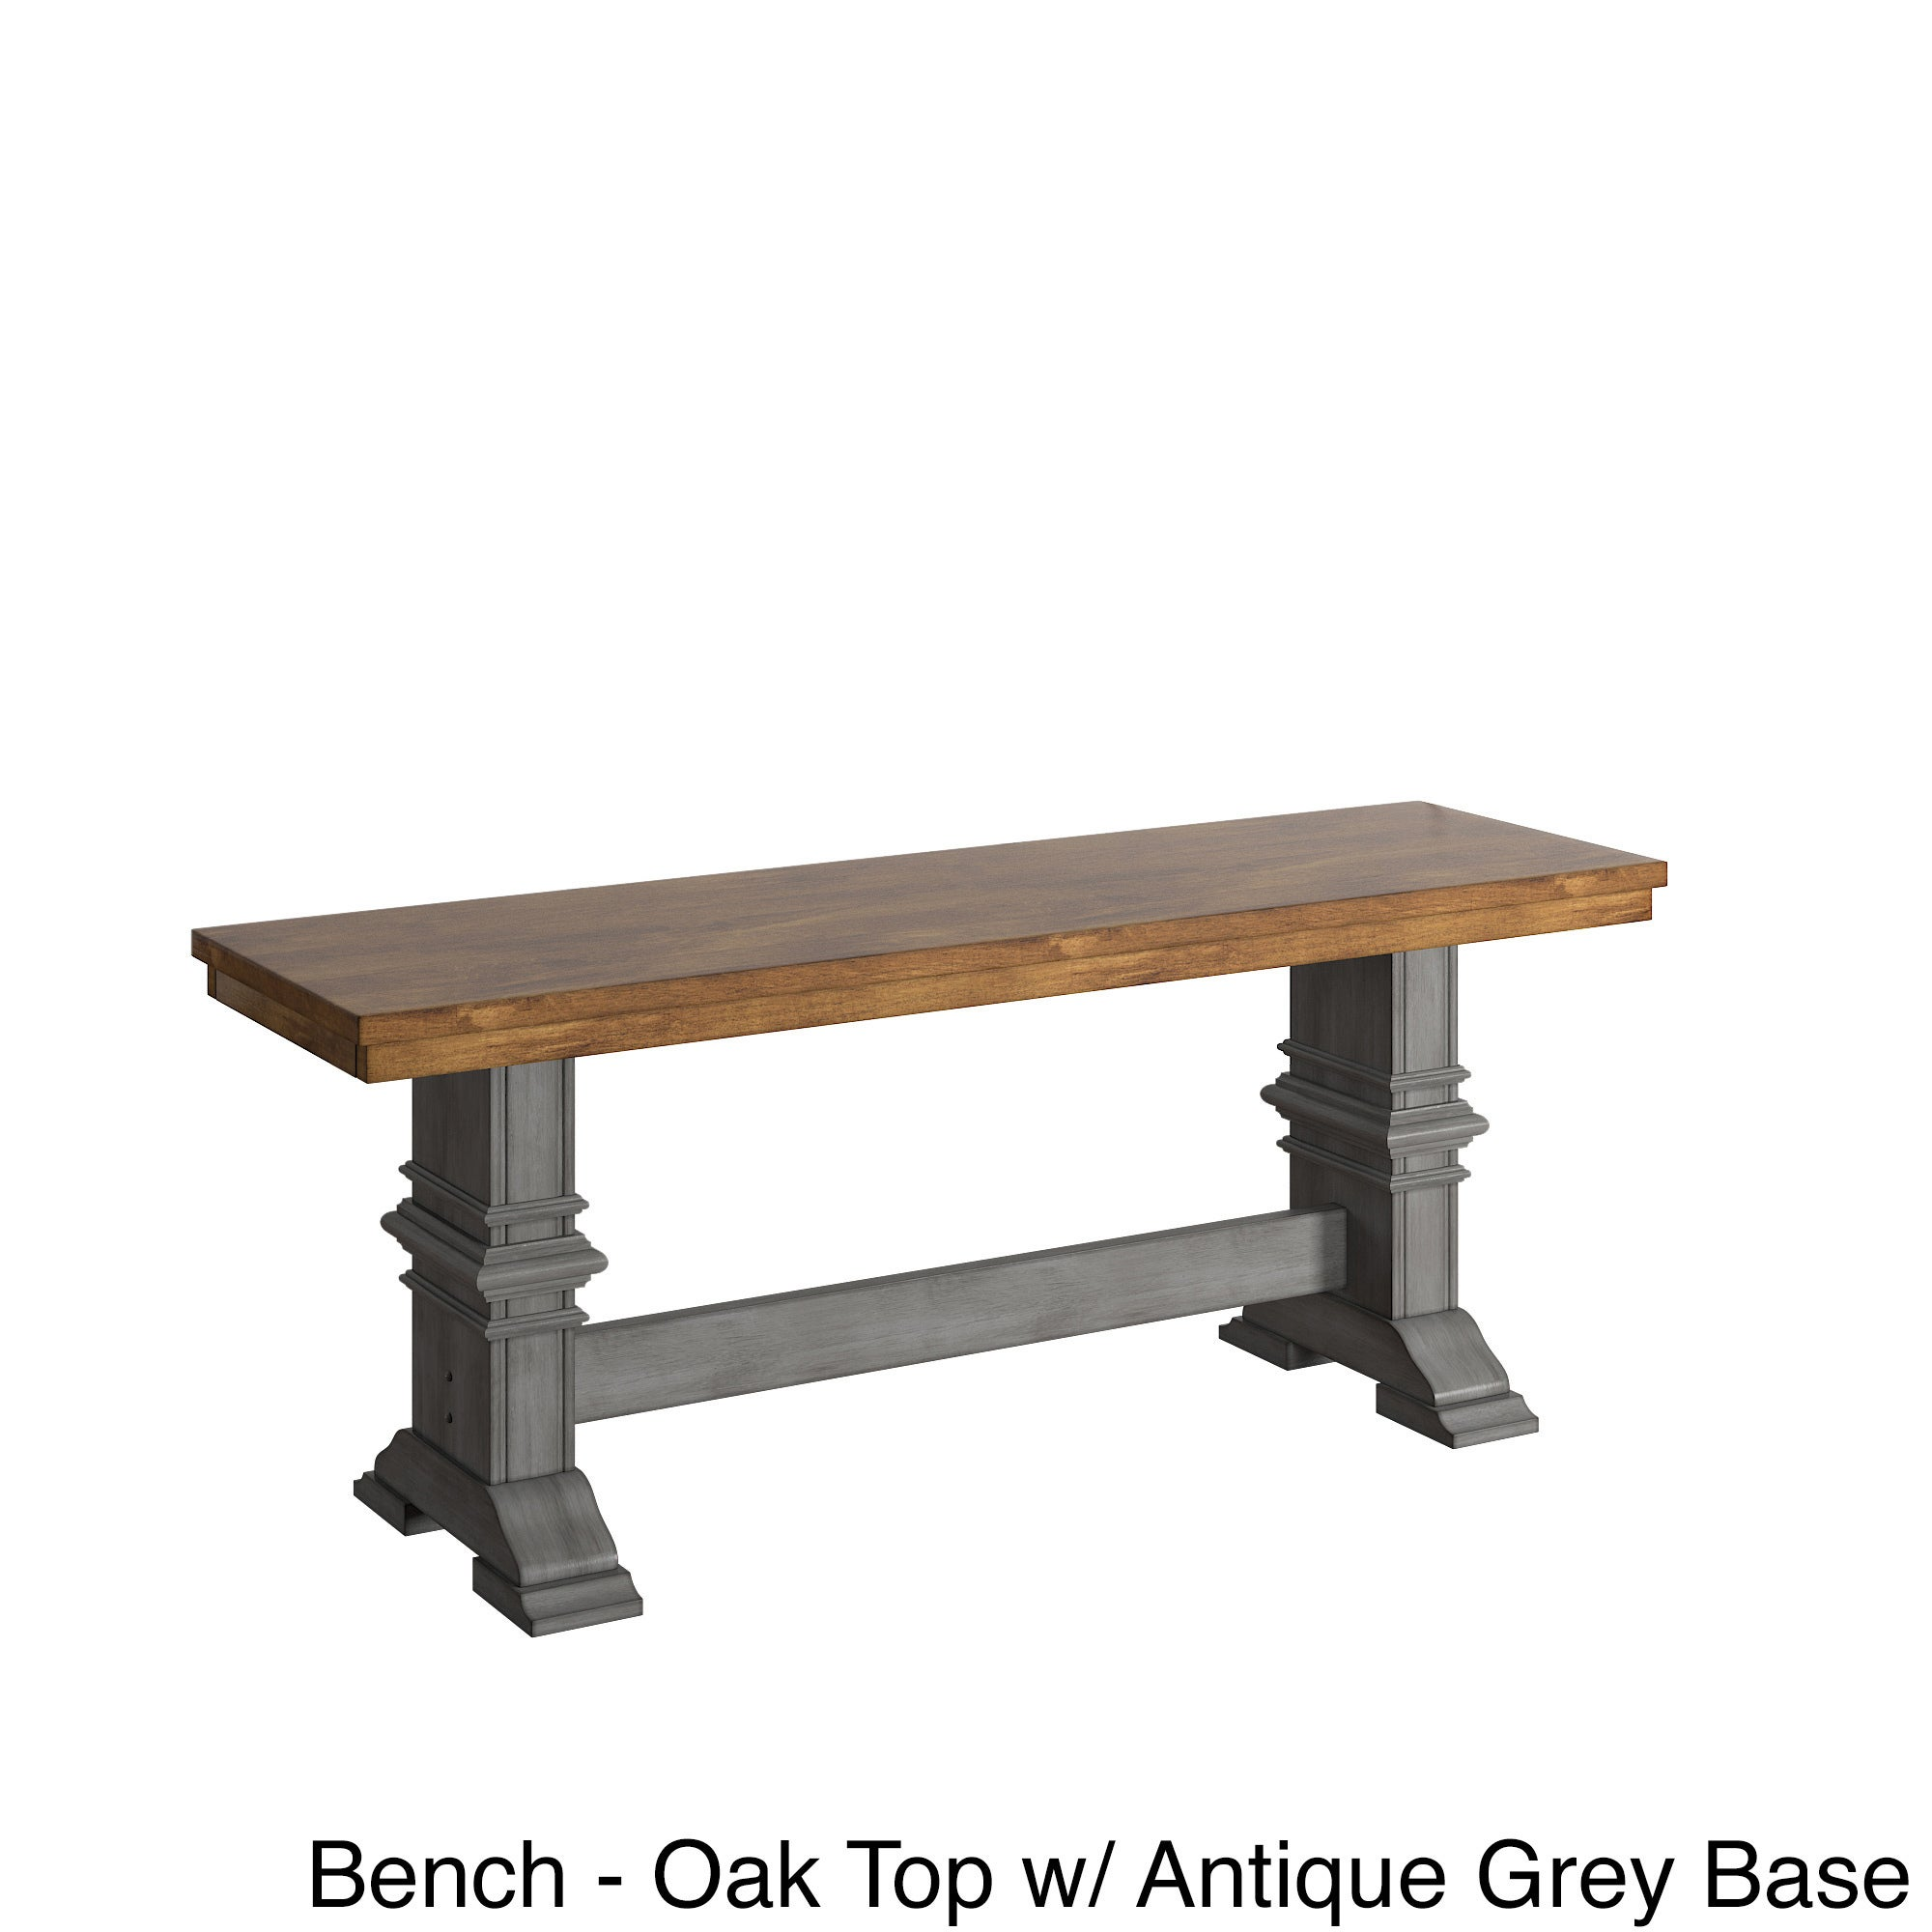 table ideas narrow curved dining collection of trestle maya bench awesome pinterest benches breakfast with back nook wood solid distressed